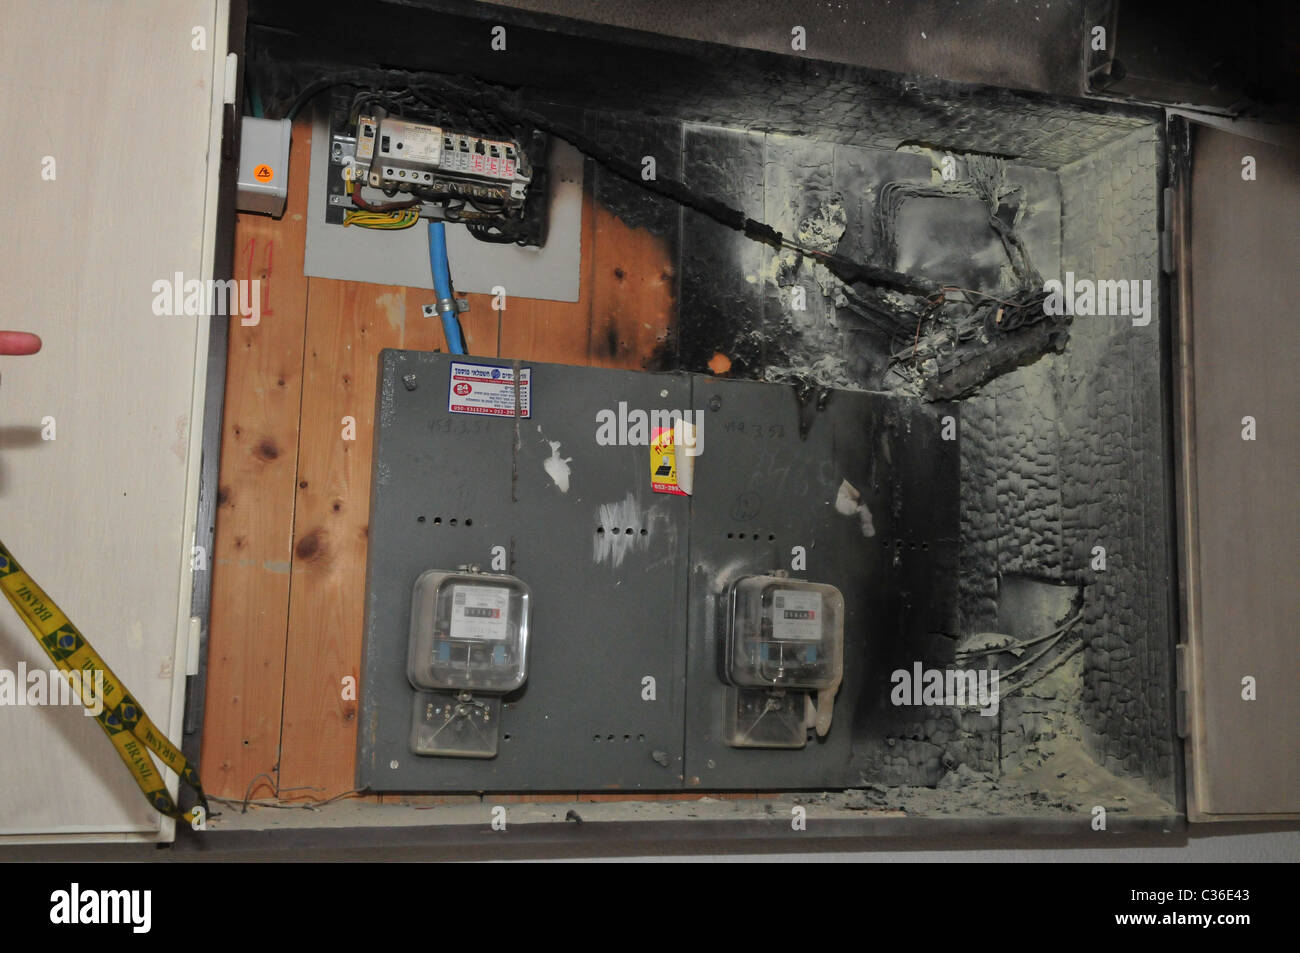 A fire broke out in a household electrical fuse box flames consumed the  board. The